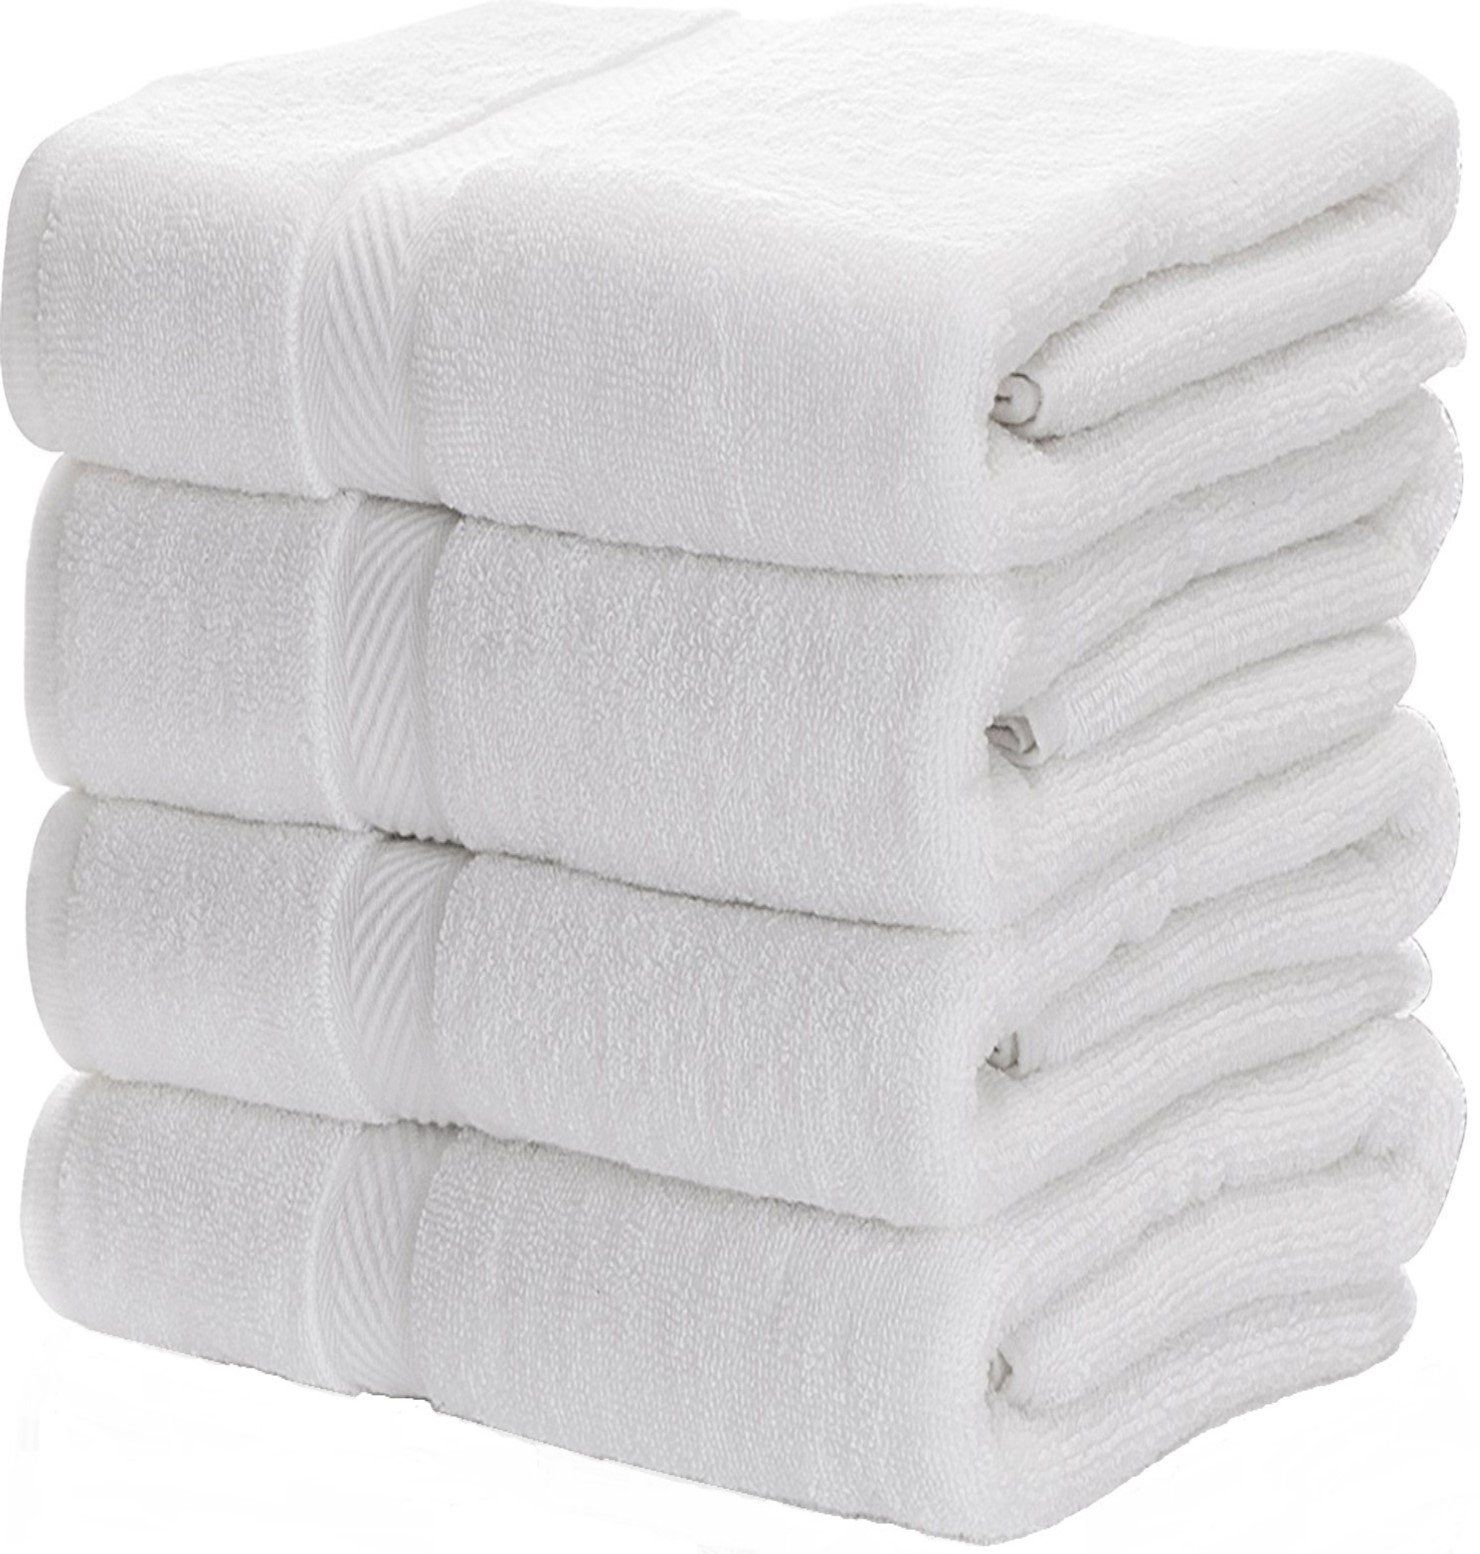 Luxury White Bath Towels for BathroomHotelSpaKitchenSet